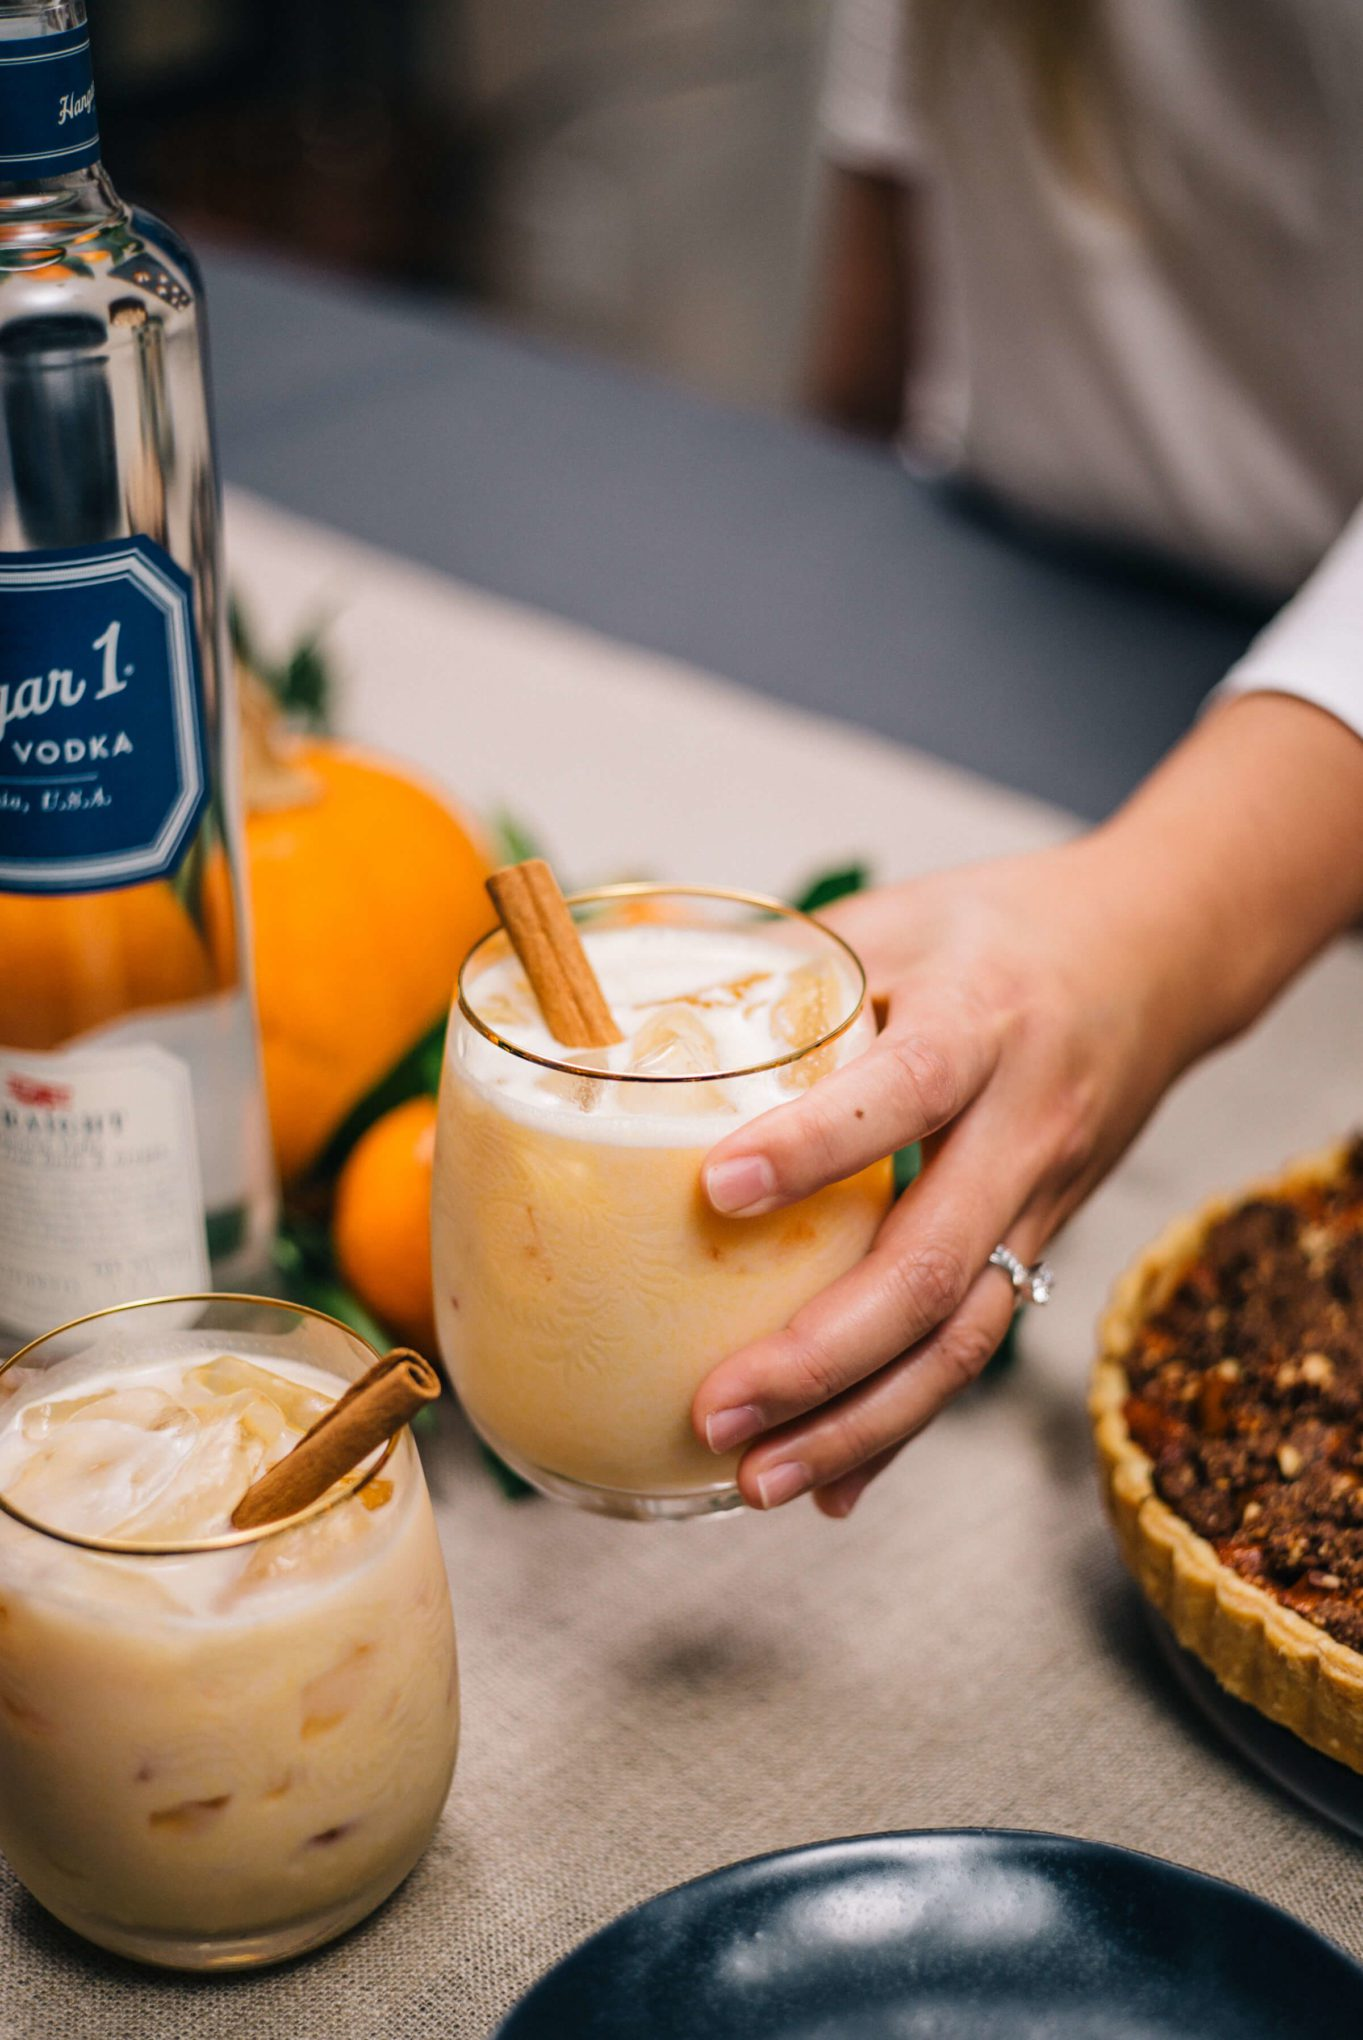 Pumpkin Cocktail, a pumpkin vodka cocktail, is the perfect Friendsgiving or Thanksgiving cocktail made with Hangar 1 Vodka made by The Taste SF